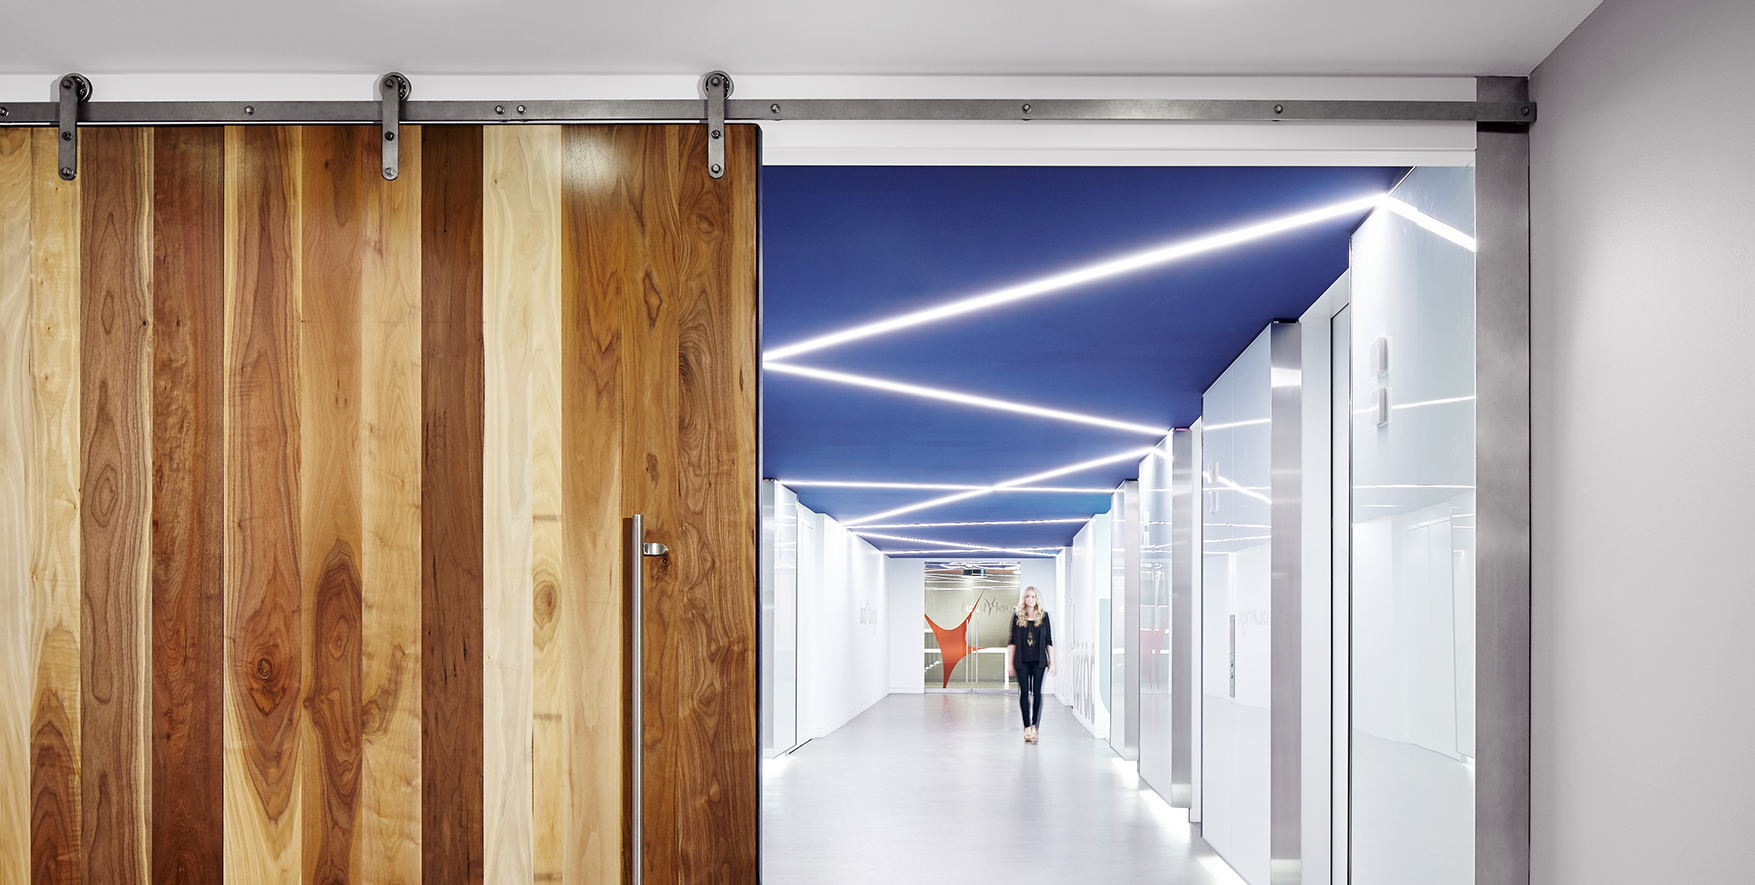 Axel-flat-track-sliding-barn-door-hardware-in-raw-steel